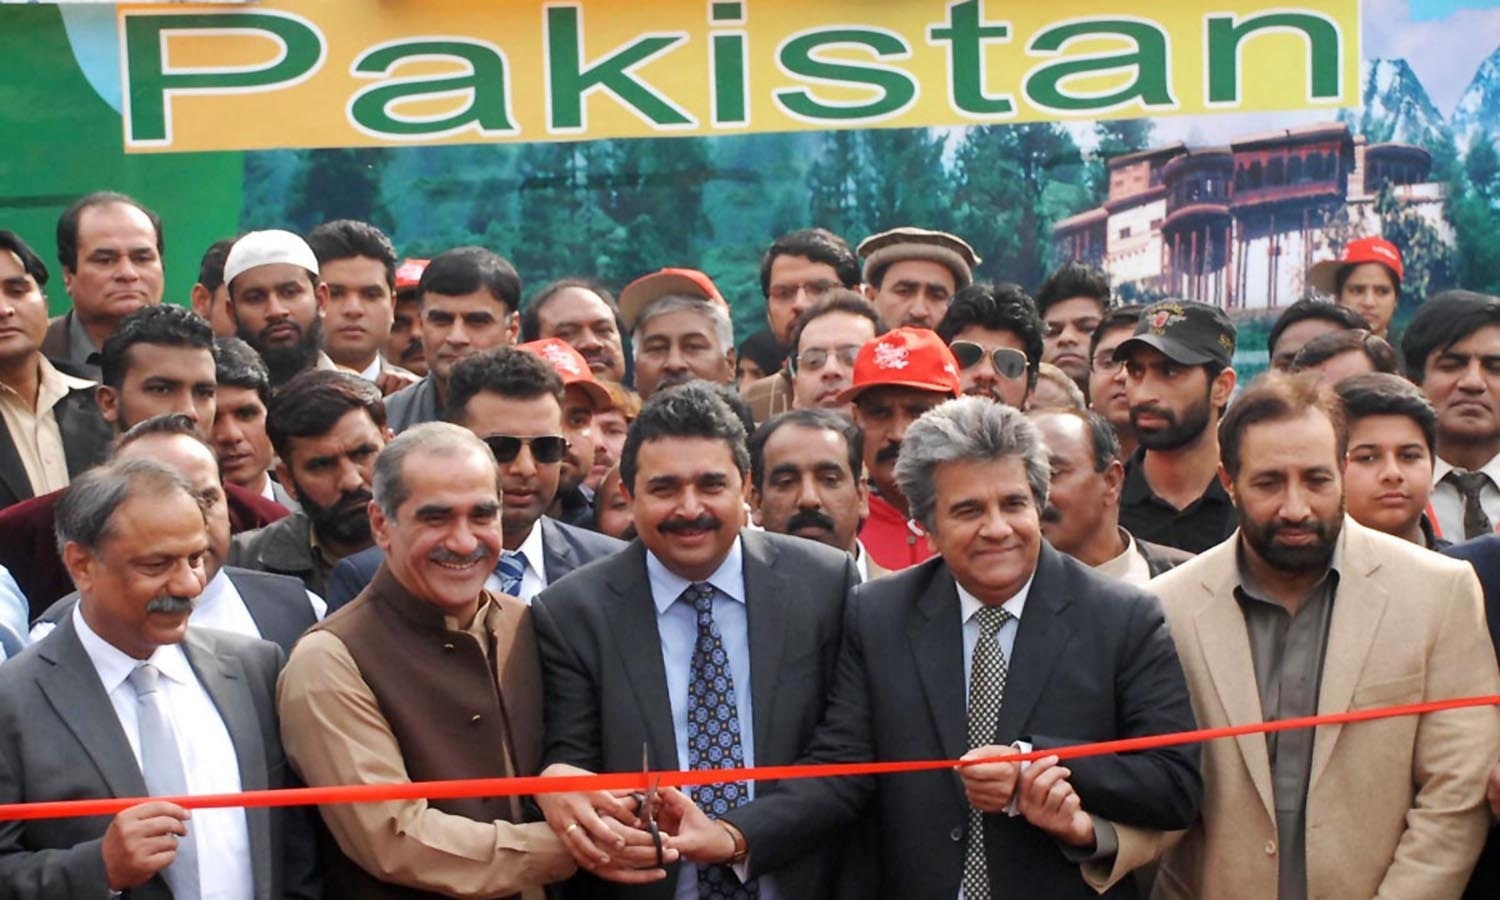 Federal Minister for Railways Khawaja Saad Rafique and Federal Minister for Human Rights Kamran Michael inaugurating Christmas train at Islamabad Railway Station ahead of Xmas.─APP